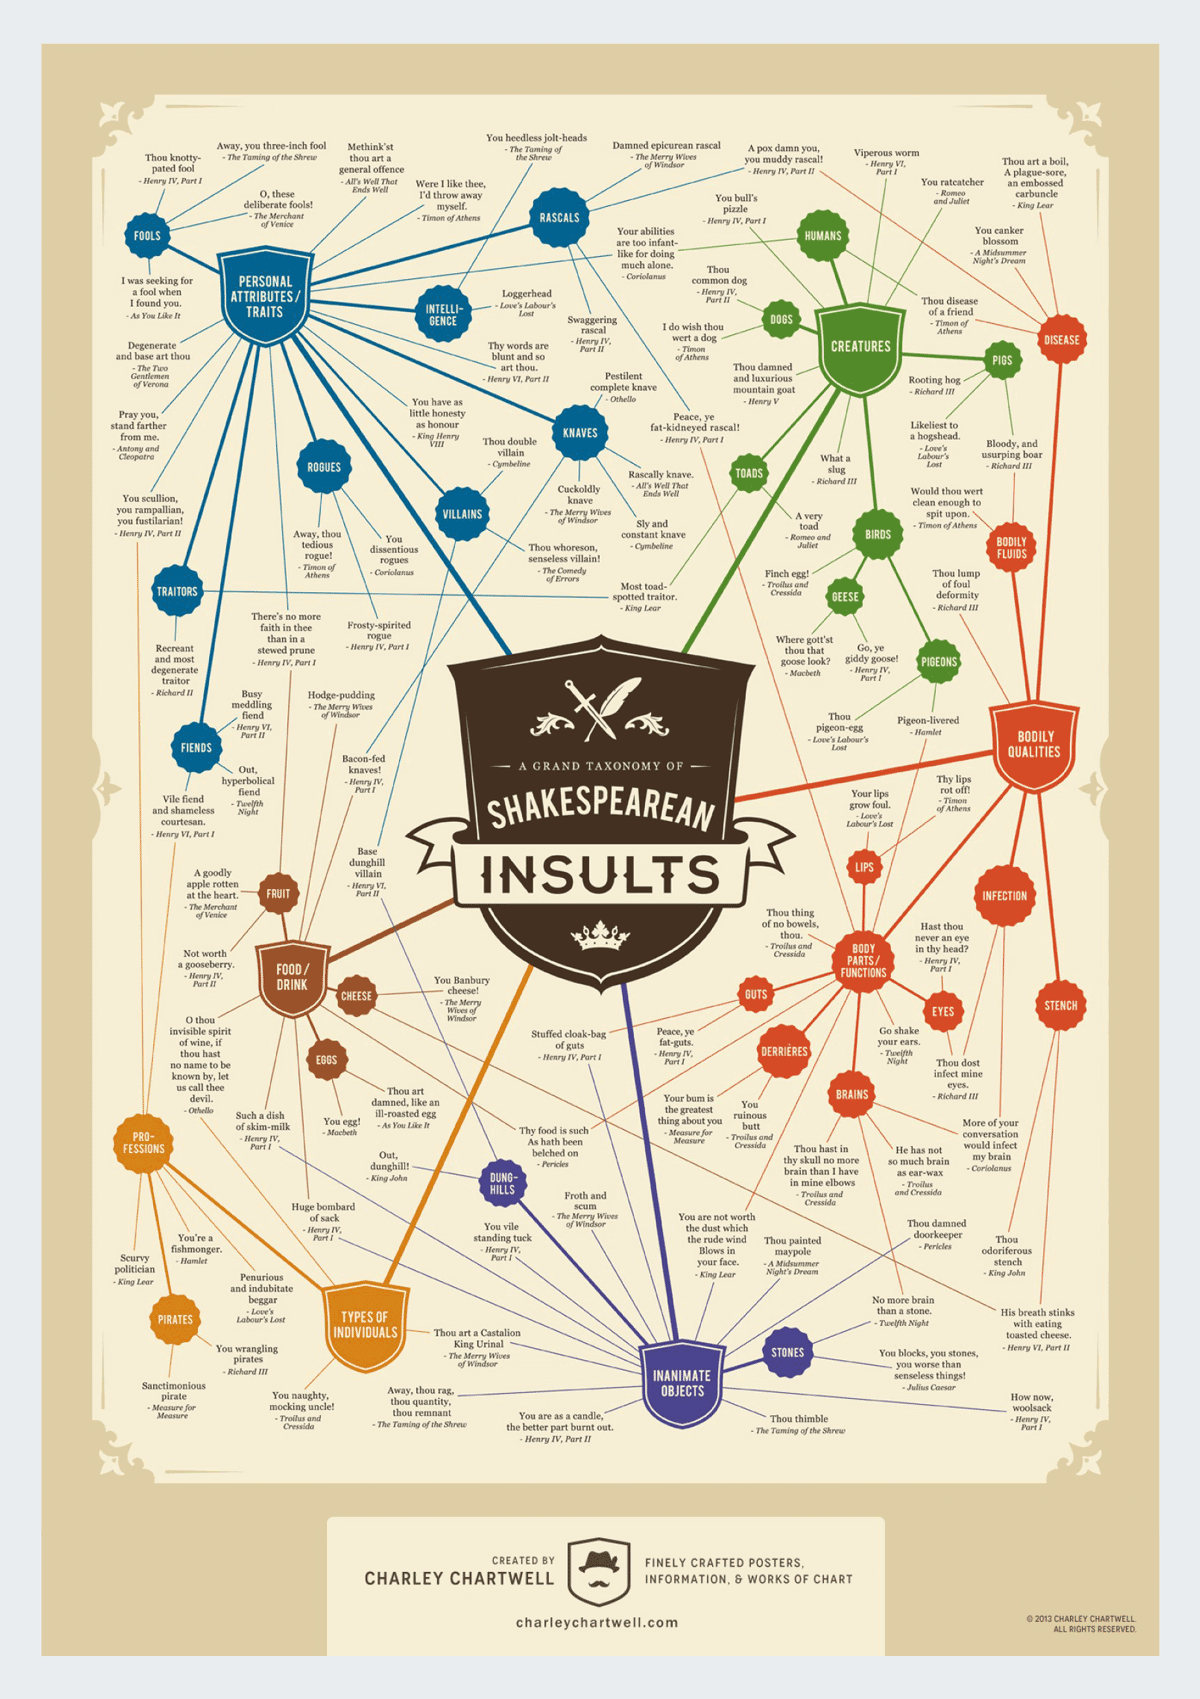 shakespearean insults infographic